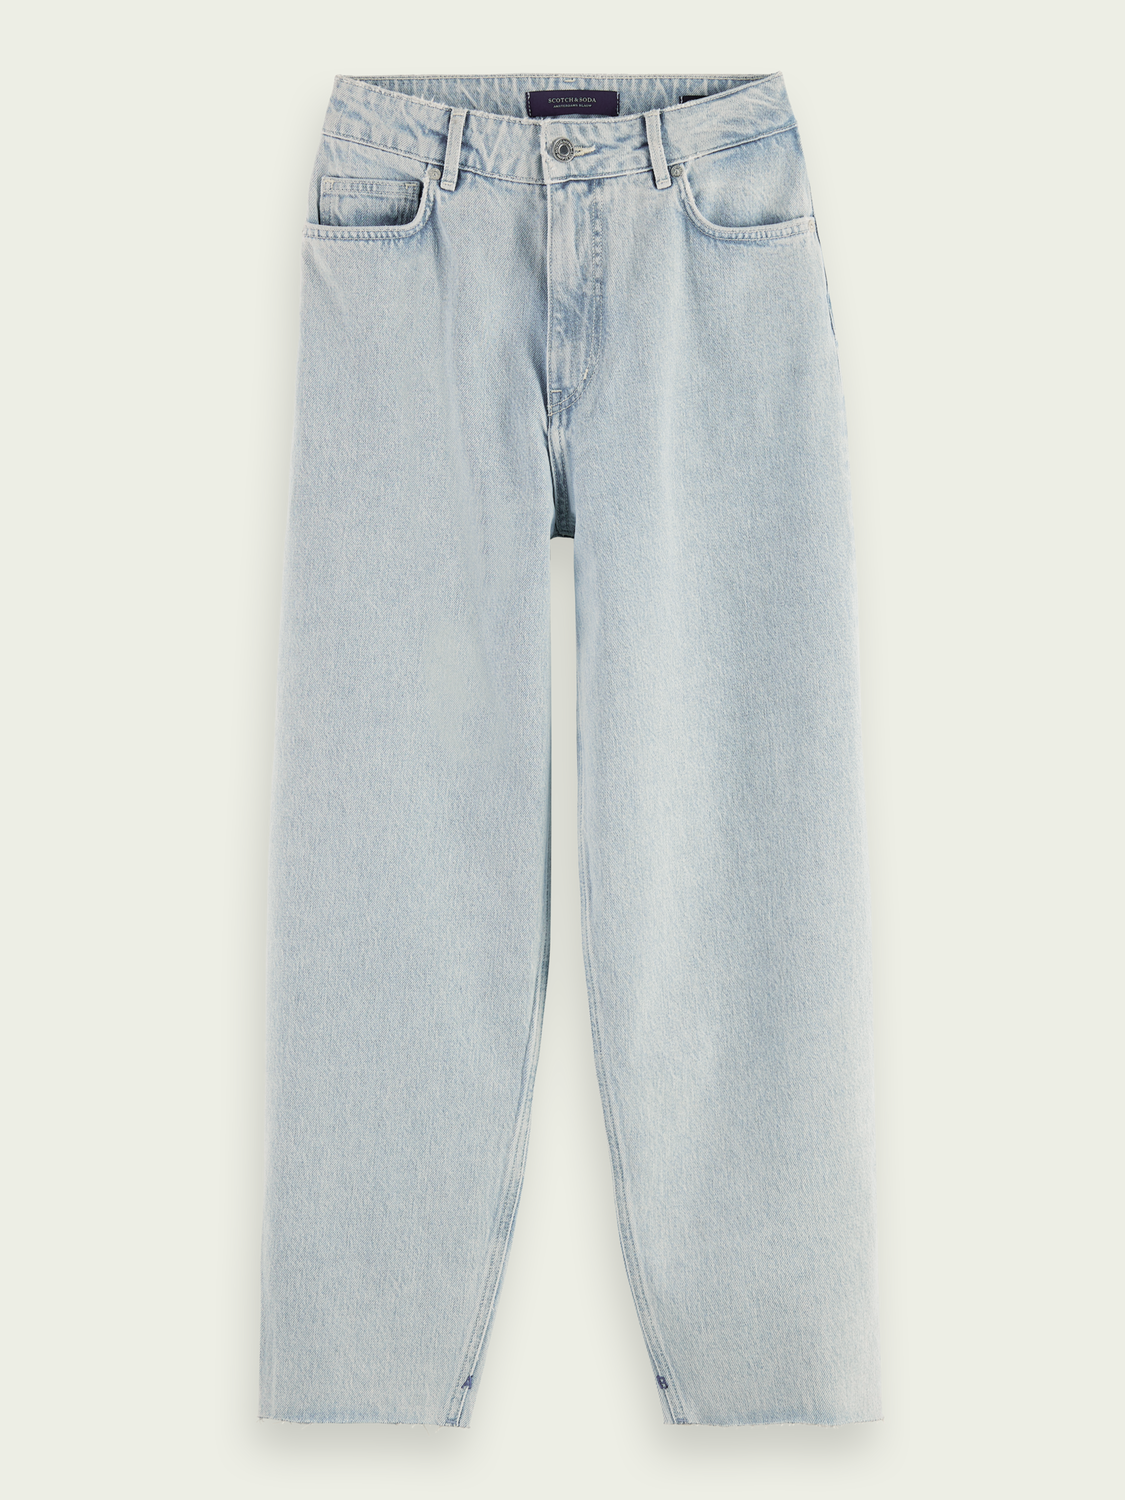 Damen Balloon Fit Jeans aus Baumwolle– Crystalized In Time